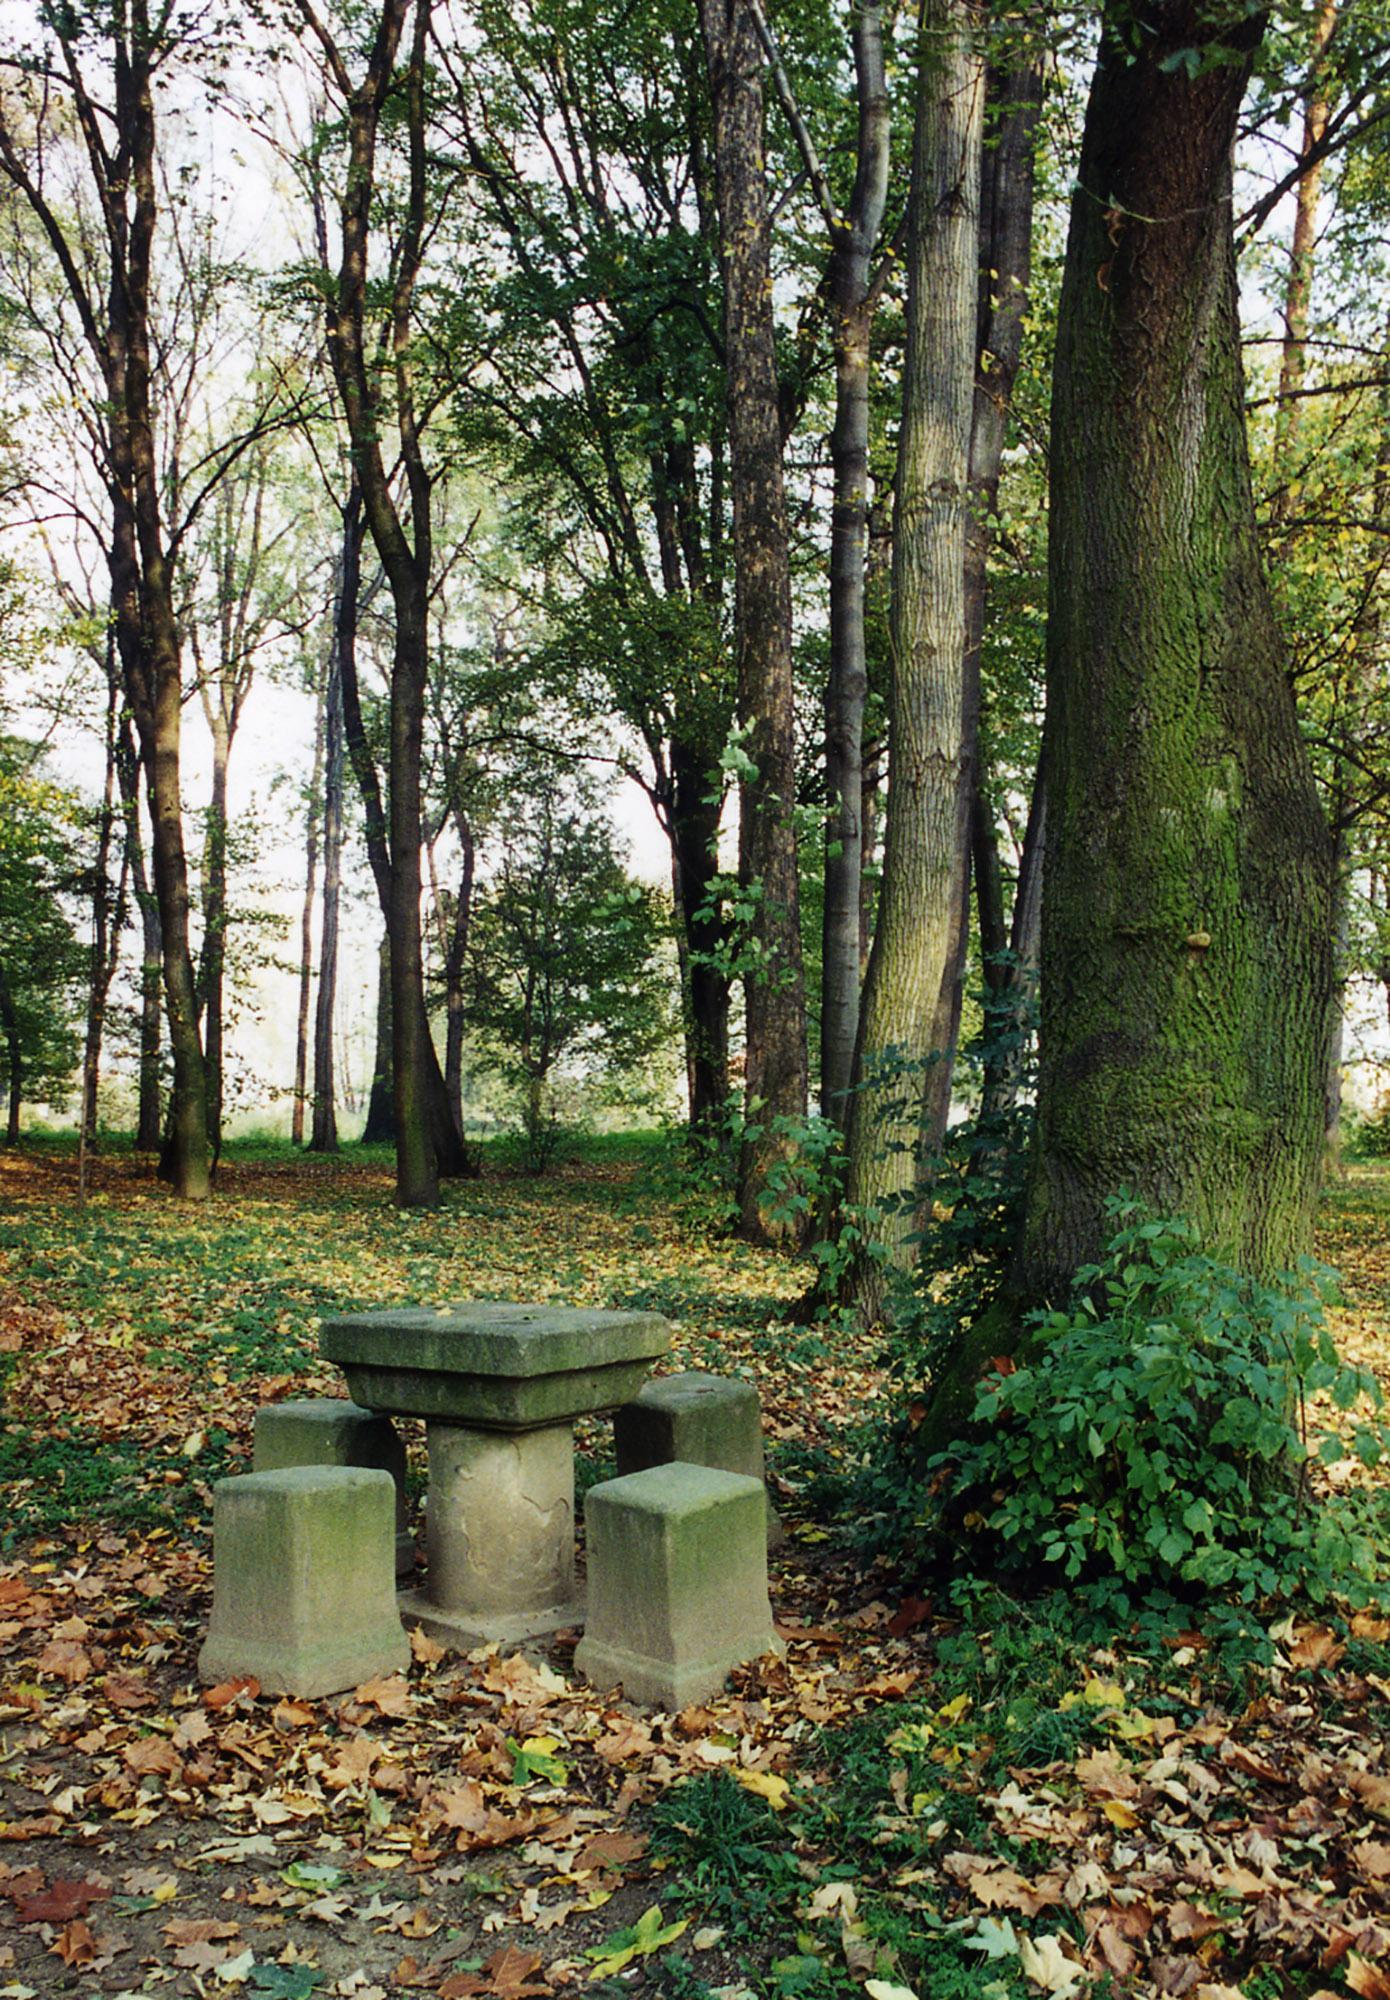 The stone table at the Palace Garden in Kroměříž where Max Švabinský spent a lot of time drawing and finding inspiration for his work. – © Josef Sčotka / Archive of the museum